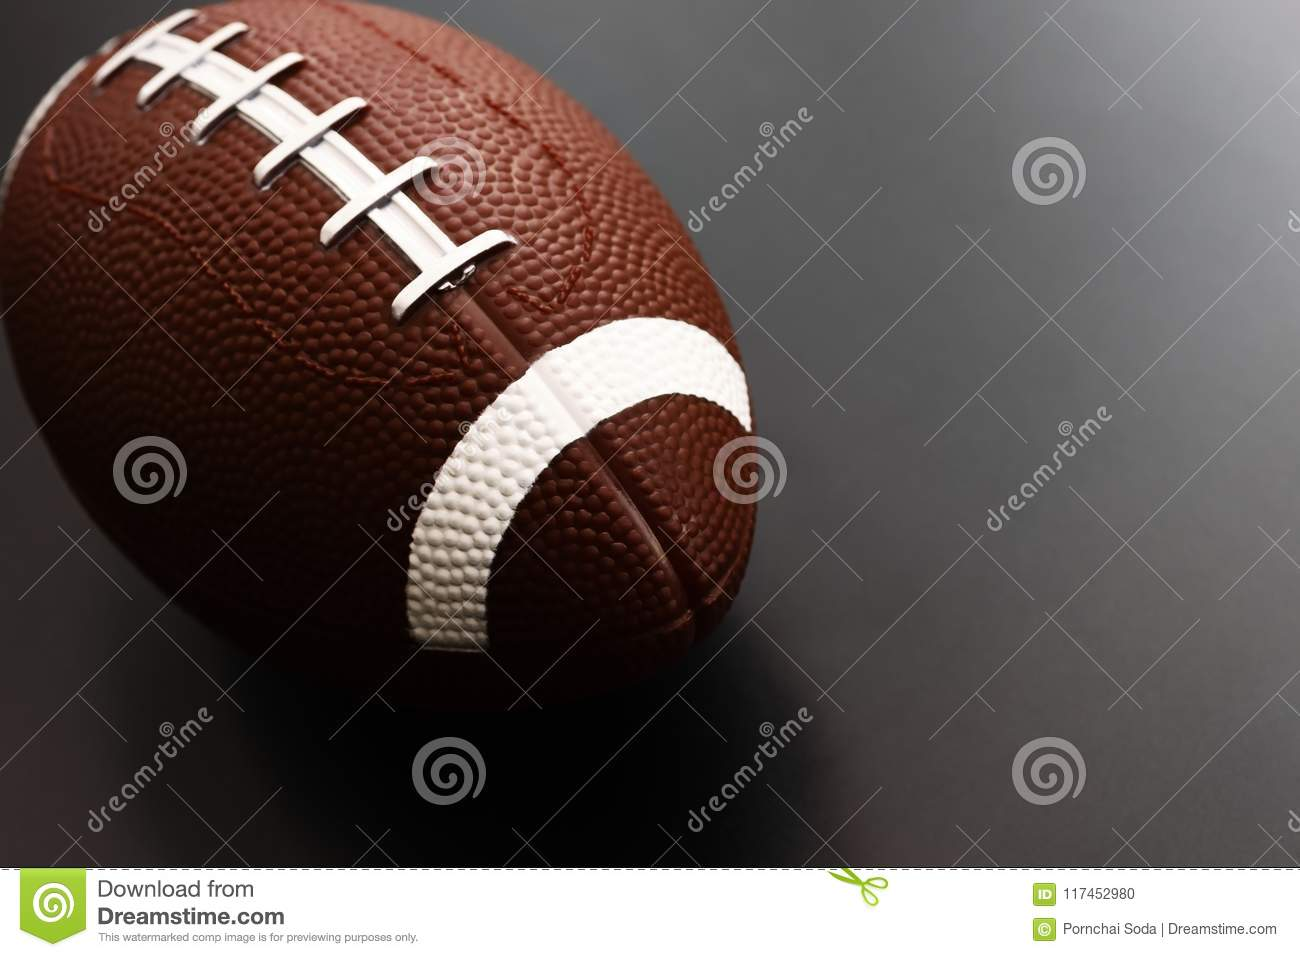 American football on black background. Sport object concept